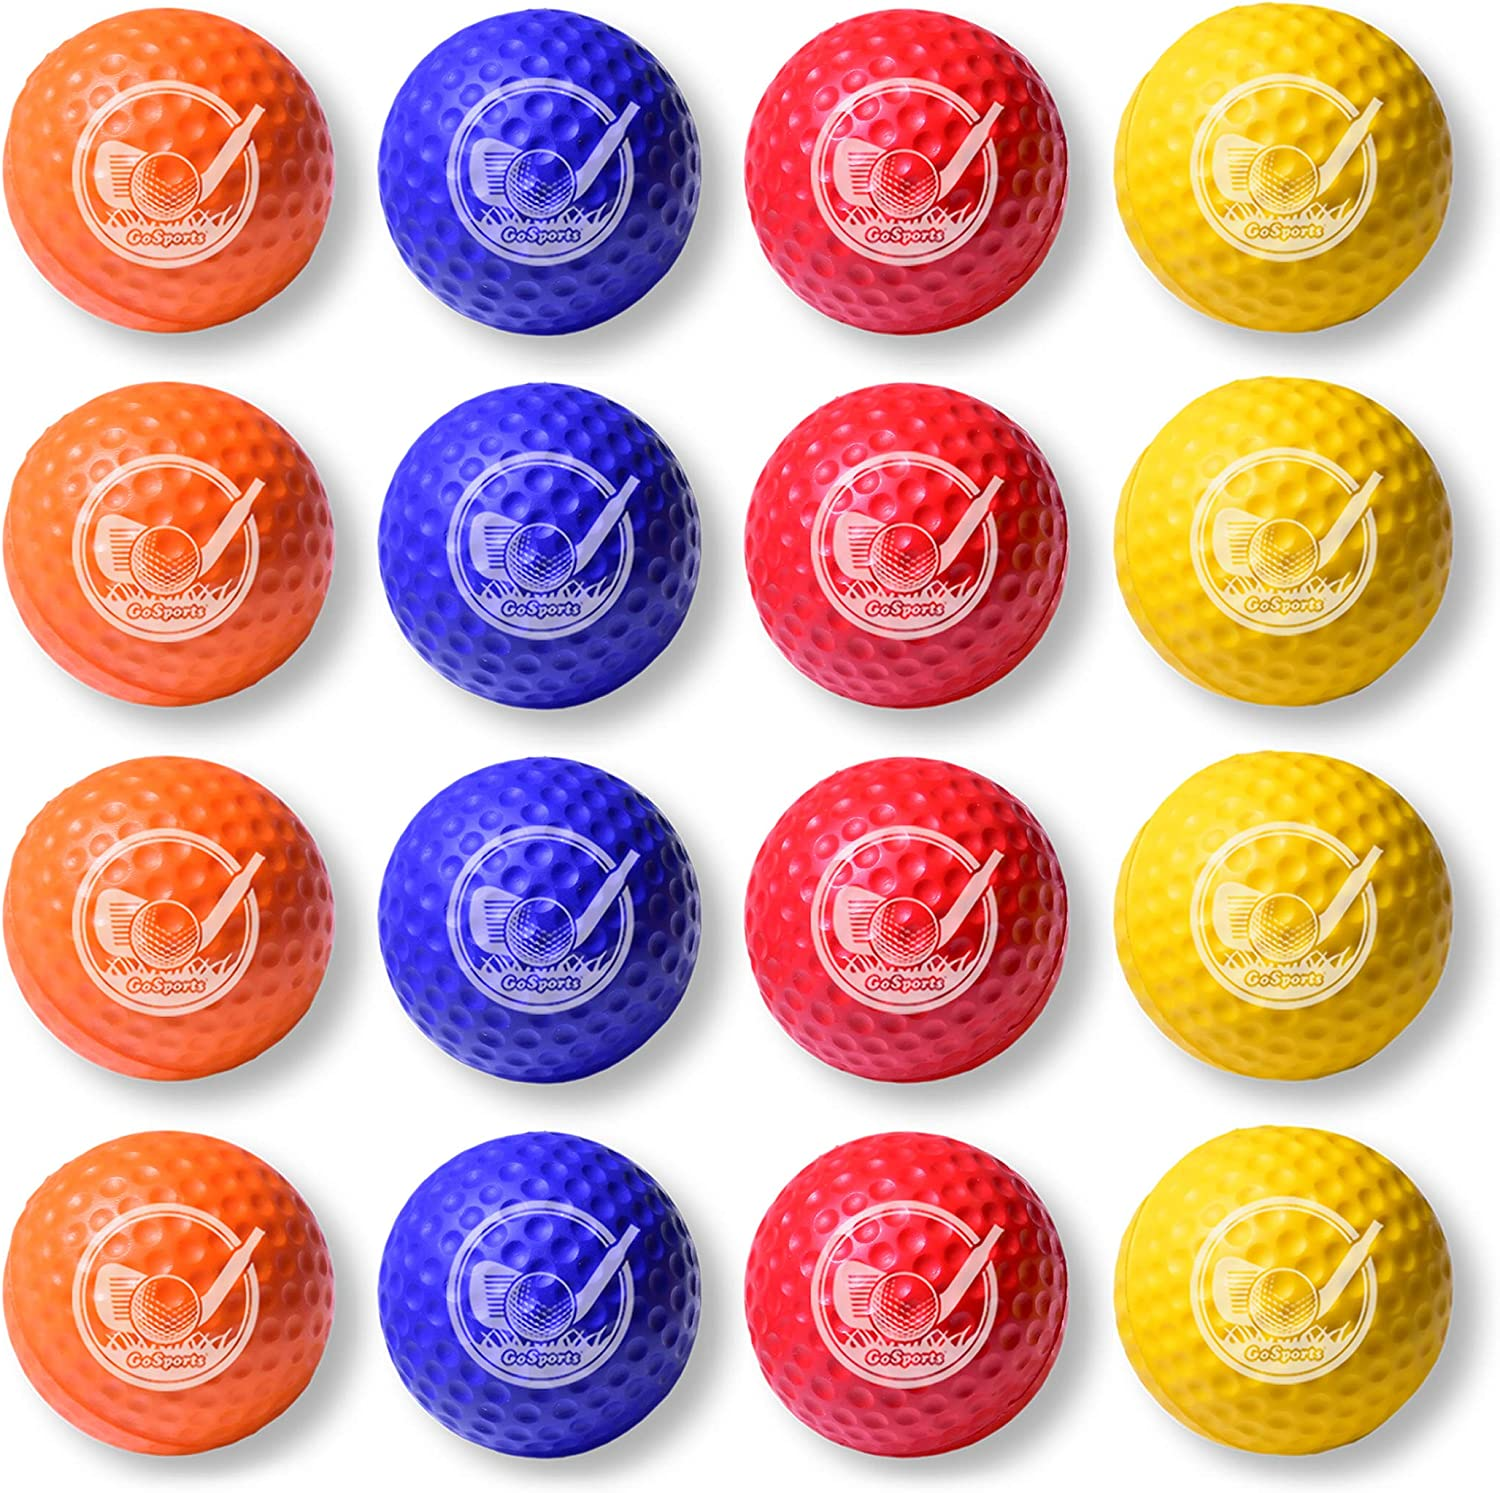 GoSports Foam Golf Practice Balls – Realistic Feel and Limited Flight Soft for Indoor or Outdoor Training Choose Between 16 Pack or 64 Pack